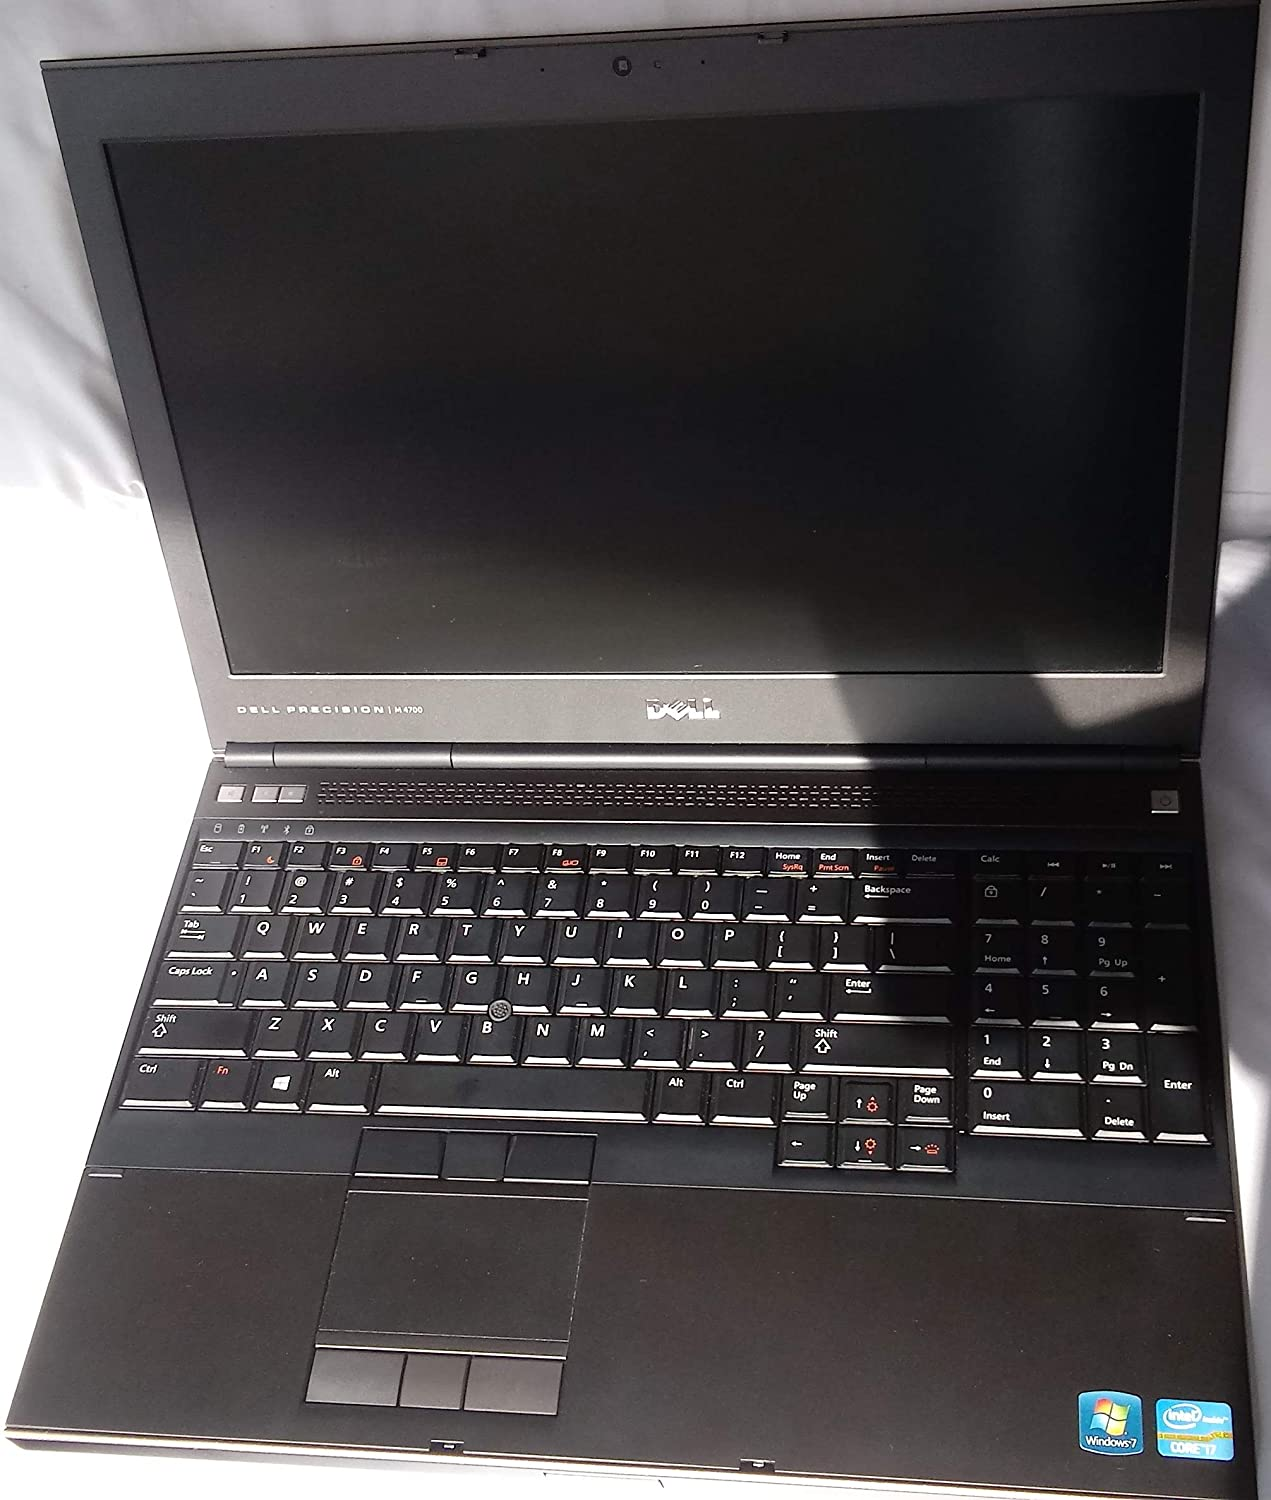 "Precision M4700 15.6"" LED Notebook - Intel Core i7 i7-3740QM 2.70 GHz"